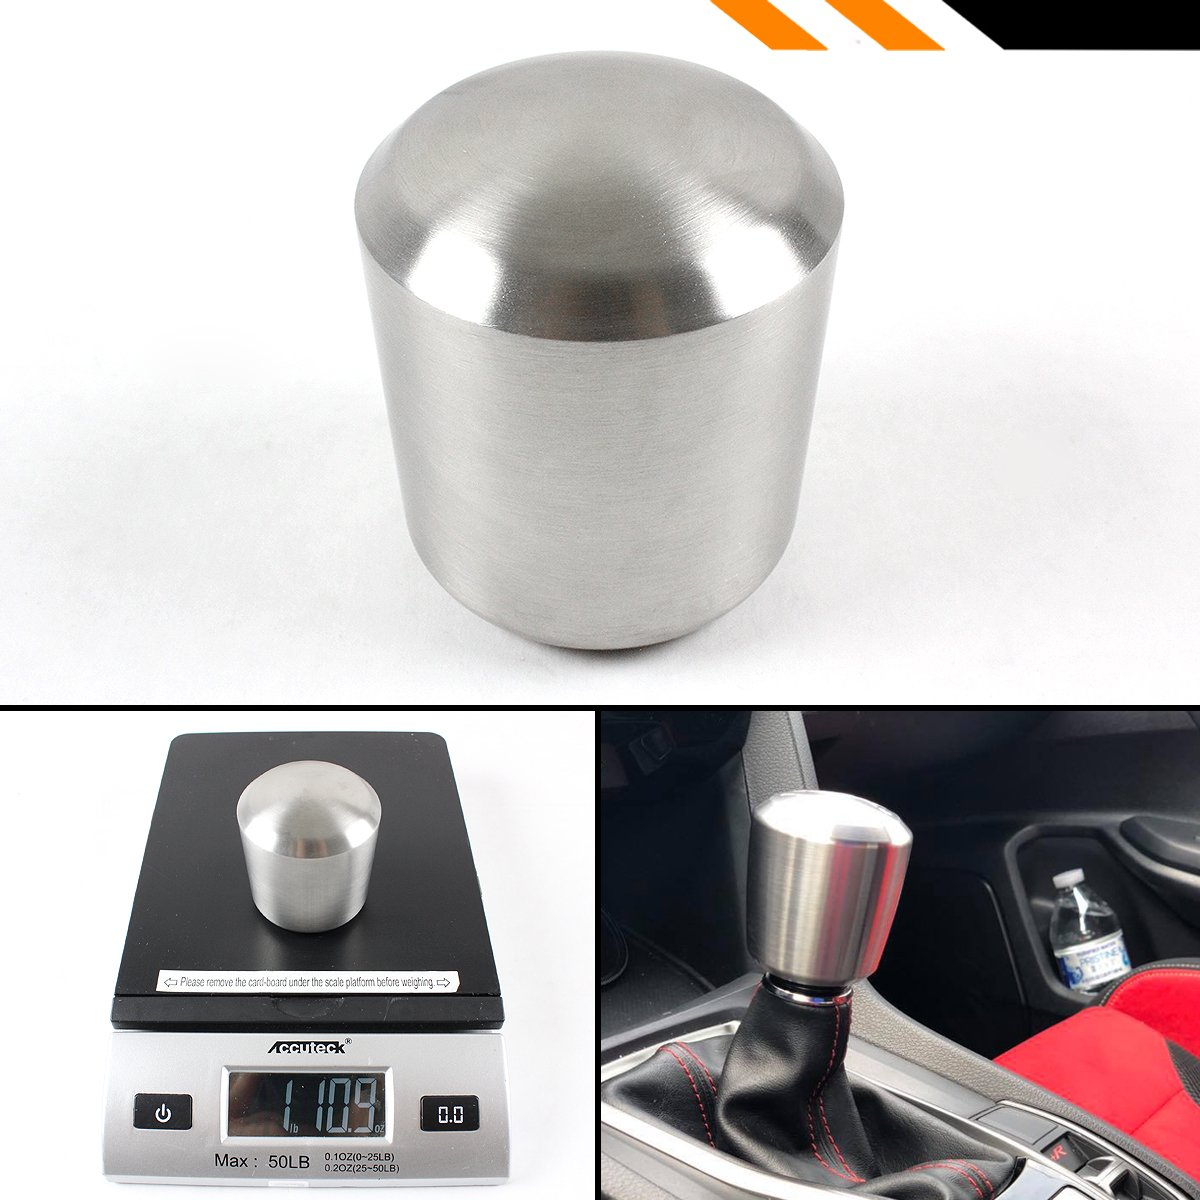 Cuztom Tuning 1LB Premium Cylinder Stainless Steel Manual//Automatic Transmission Heavy Weighted Shifter Gear Shift Knob Selector